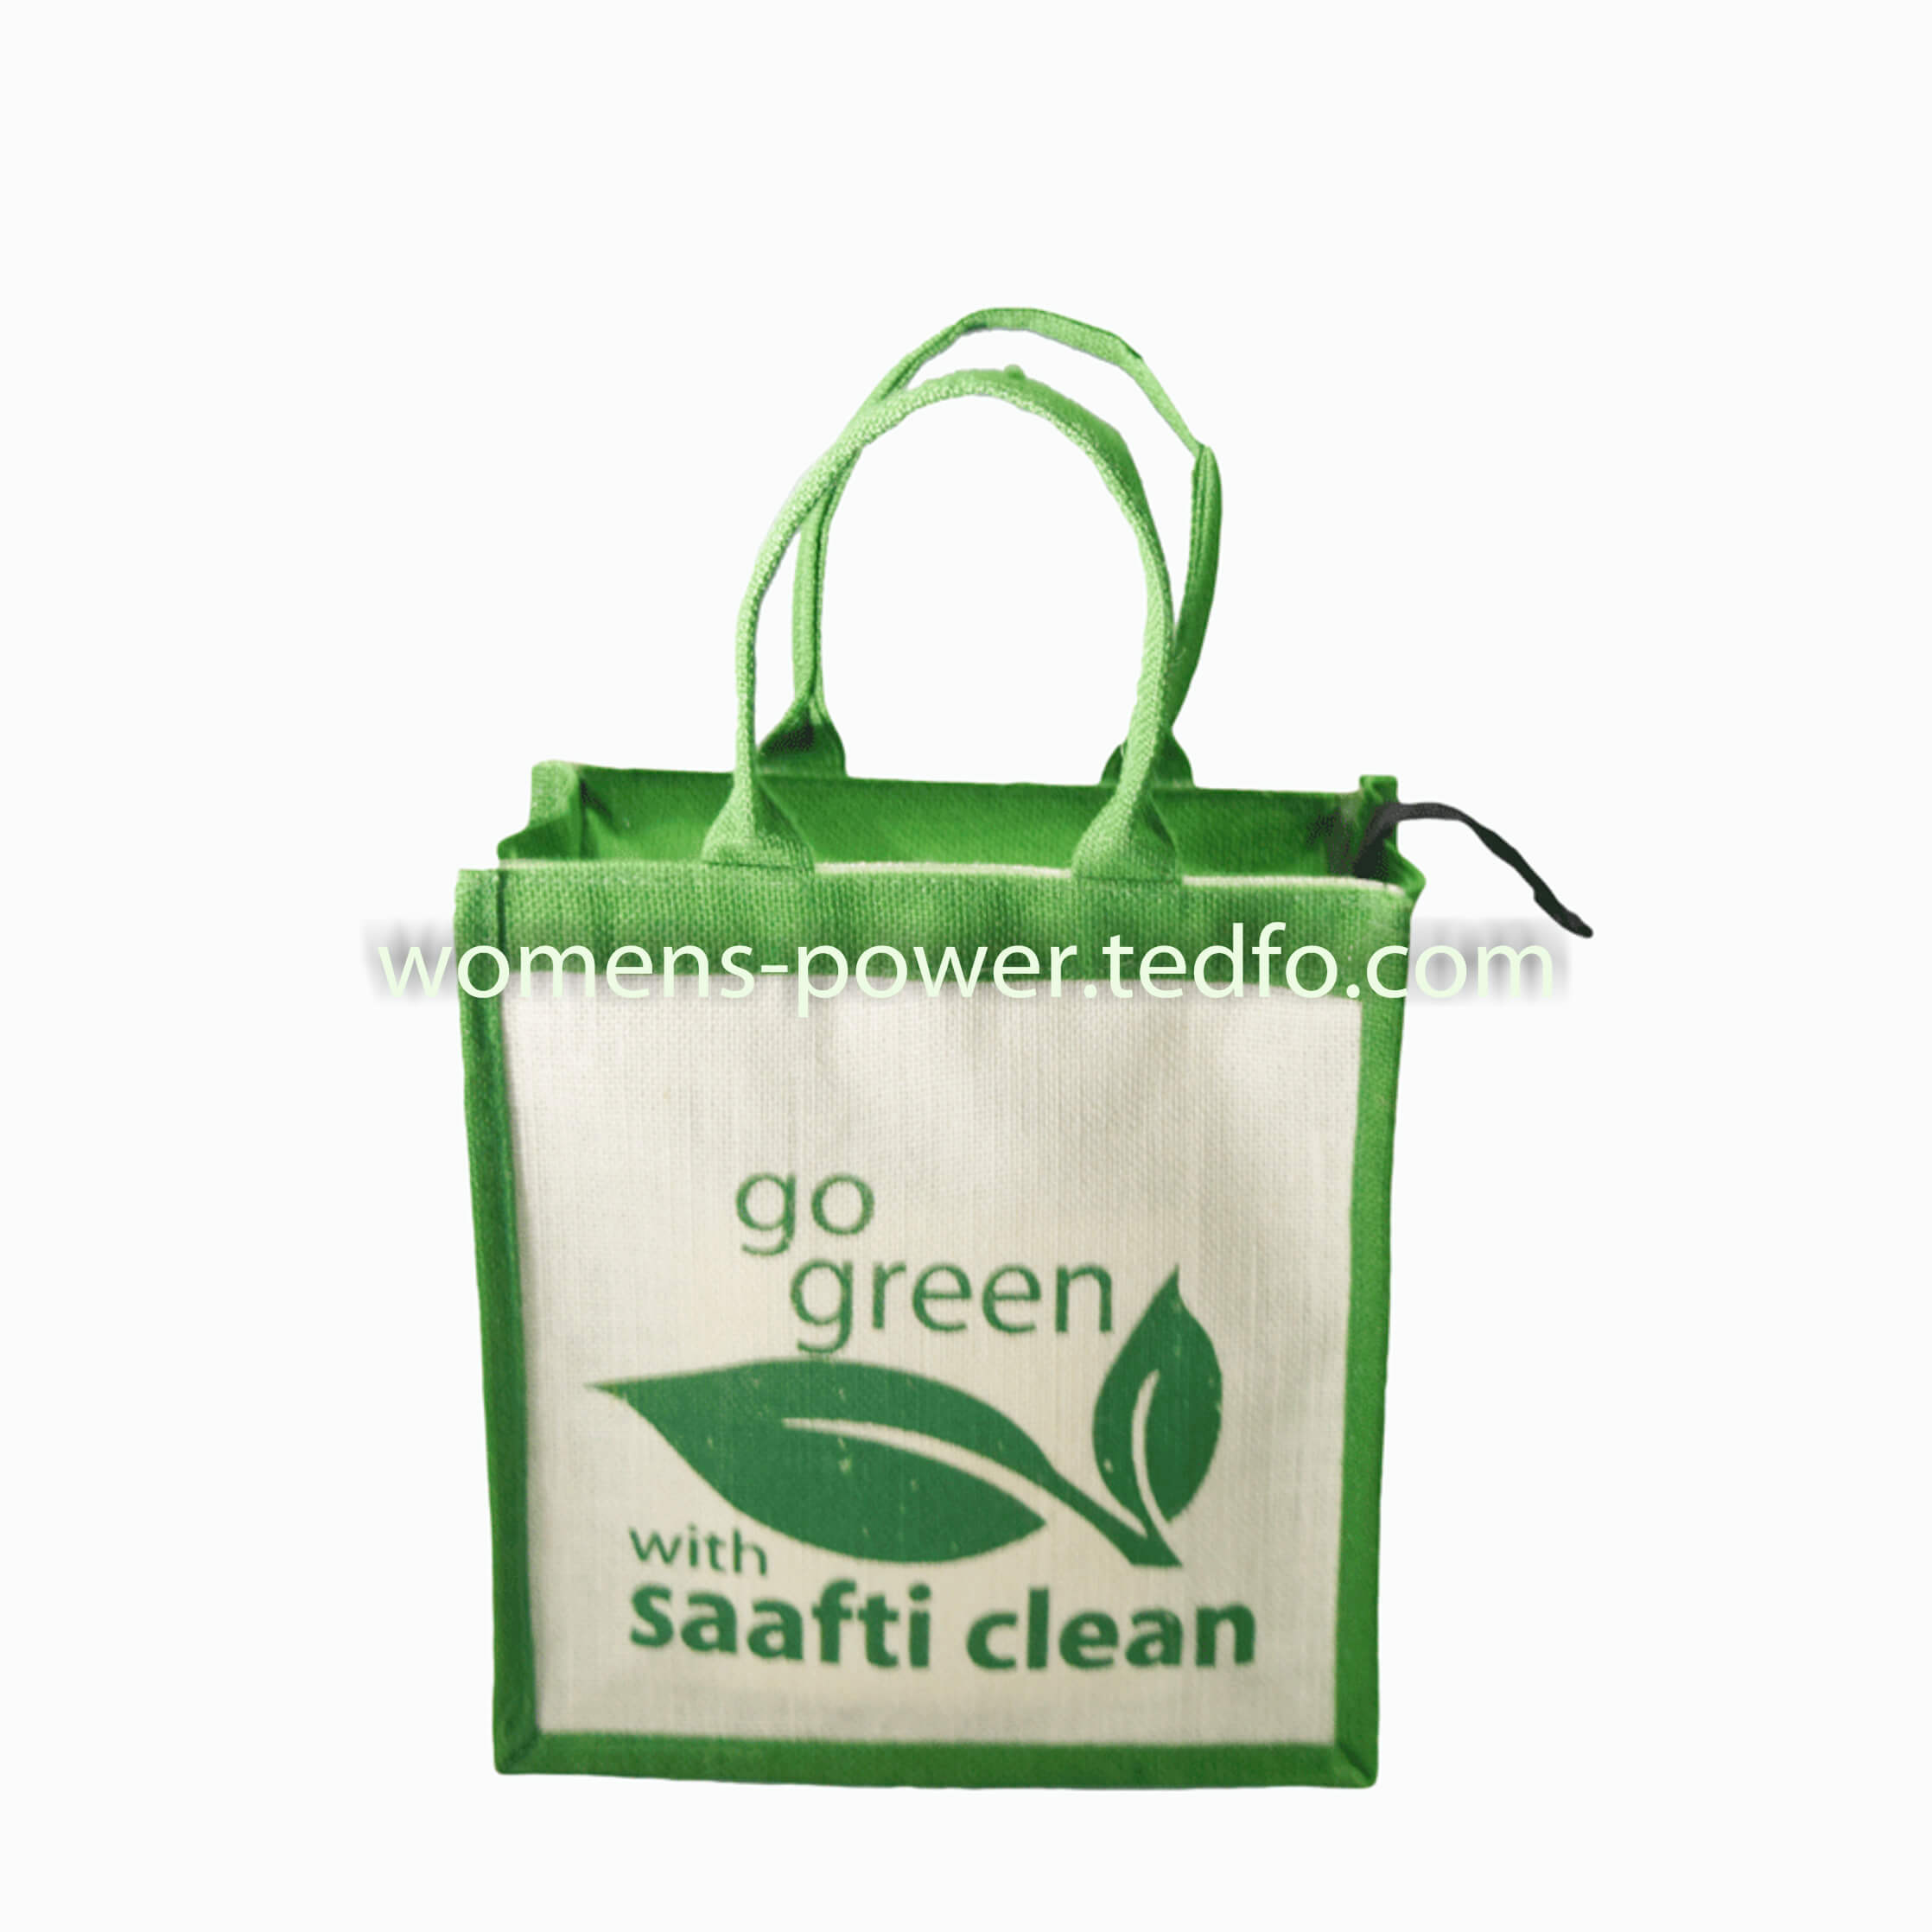 Jute Made Gift Bags Go Green And White Themed In Desh